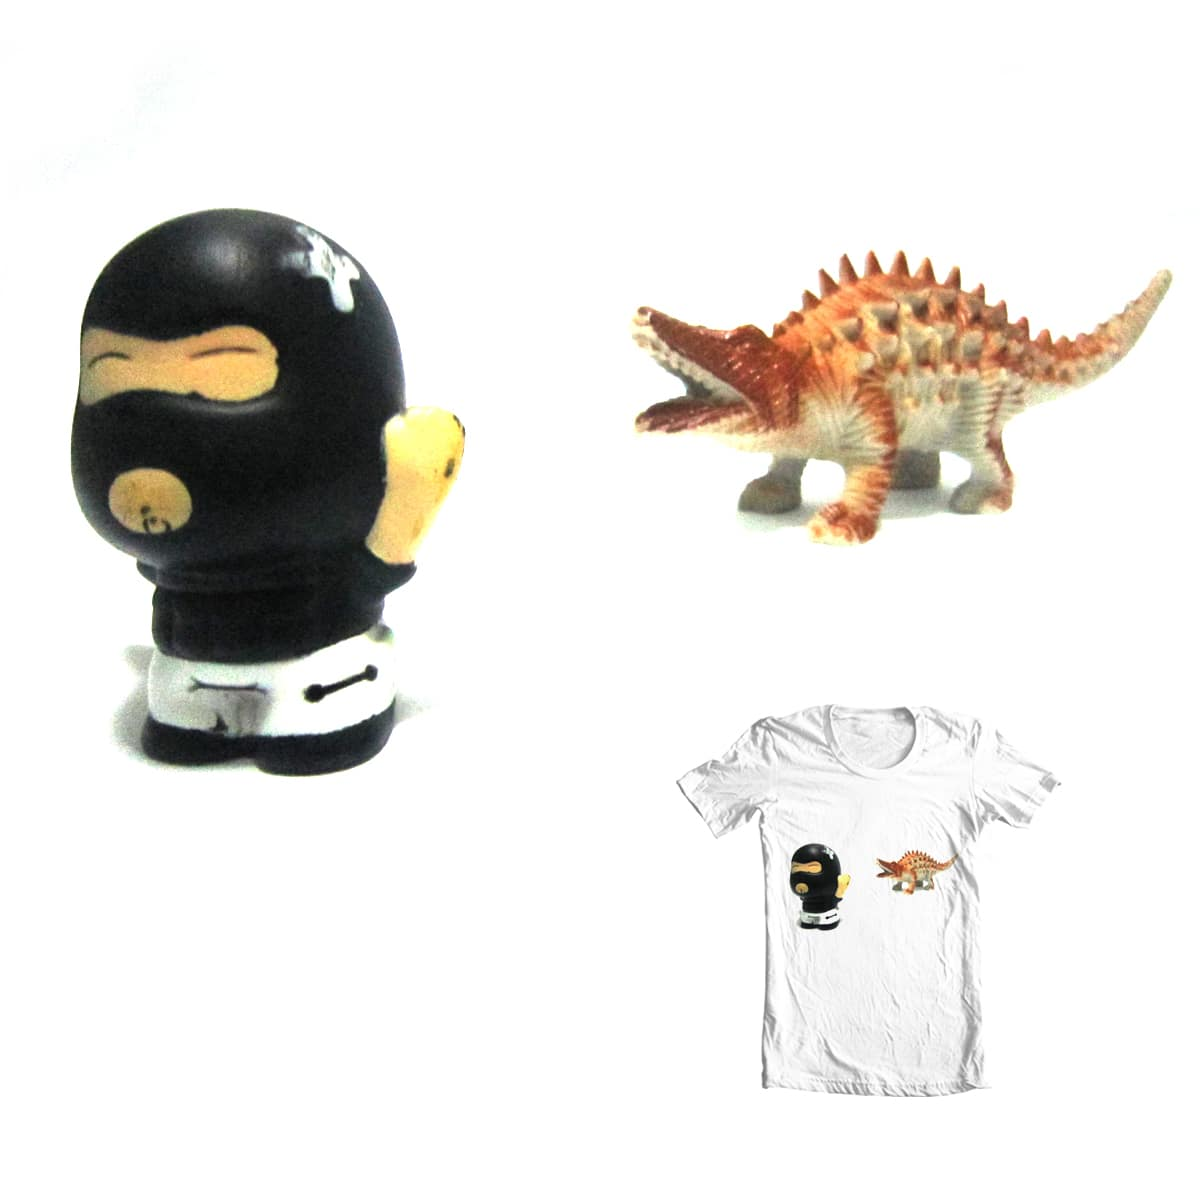 Baby Ninja in Trouble by papaomaangas on Threadless